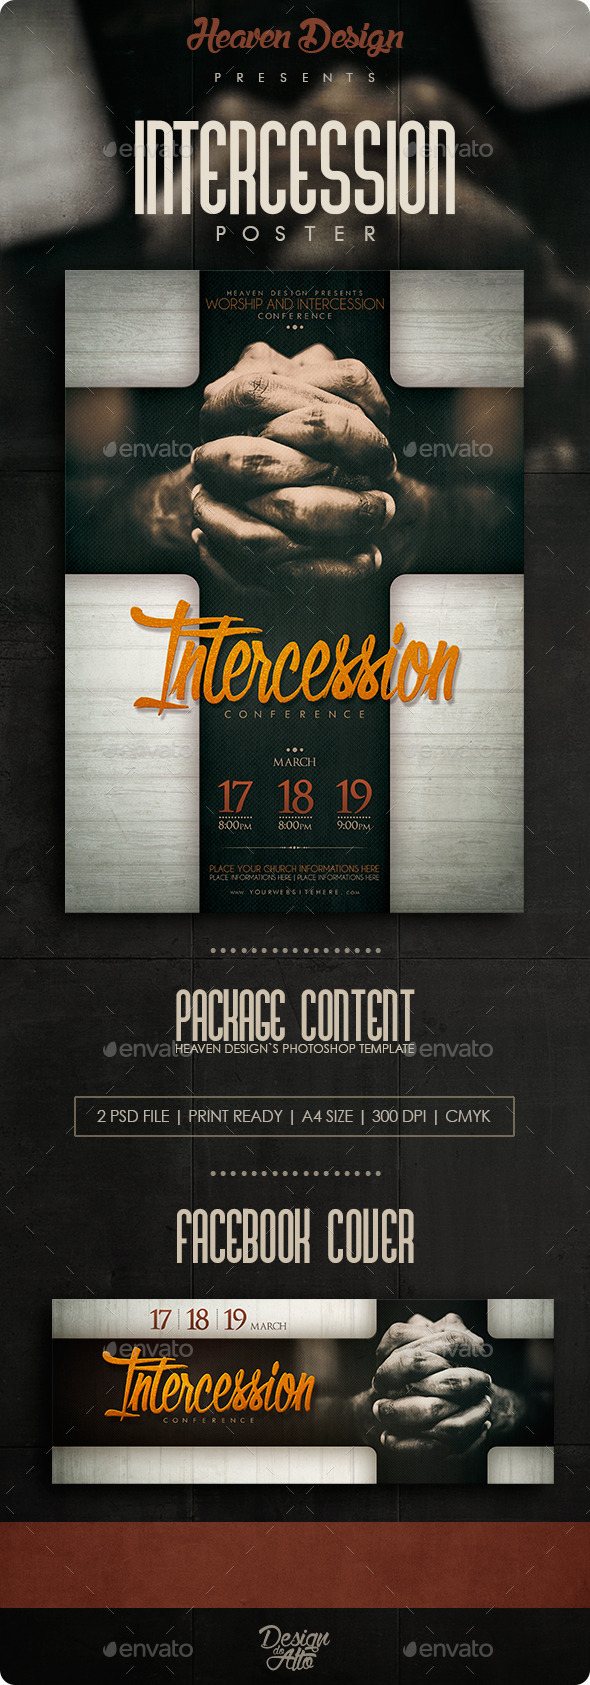 excellent flyer templates for your next event designer daily intercession